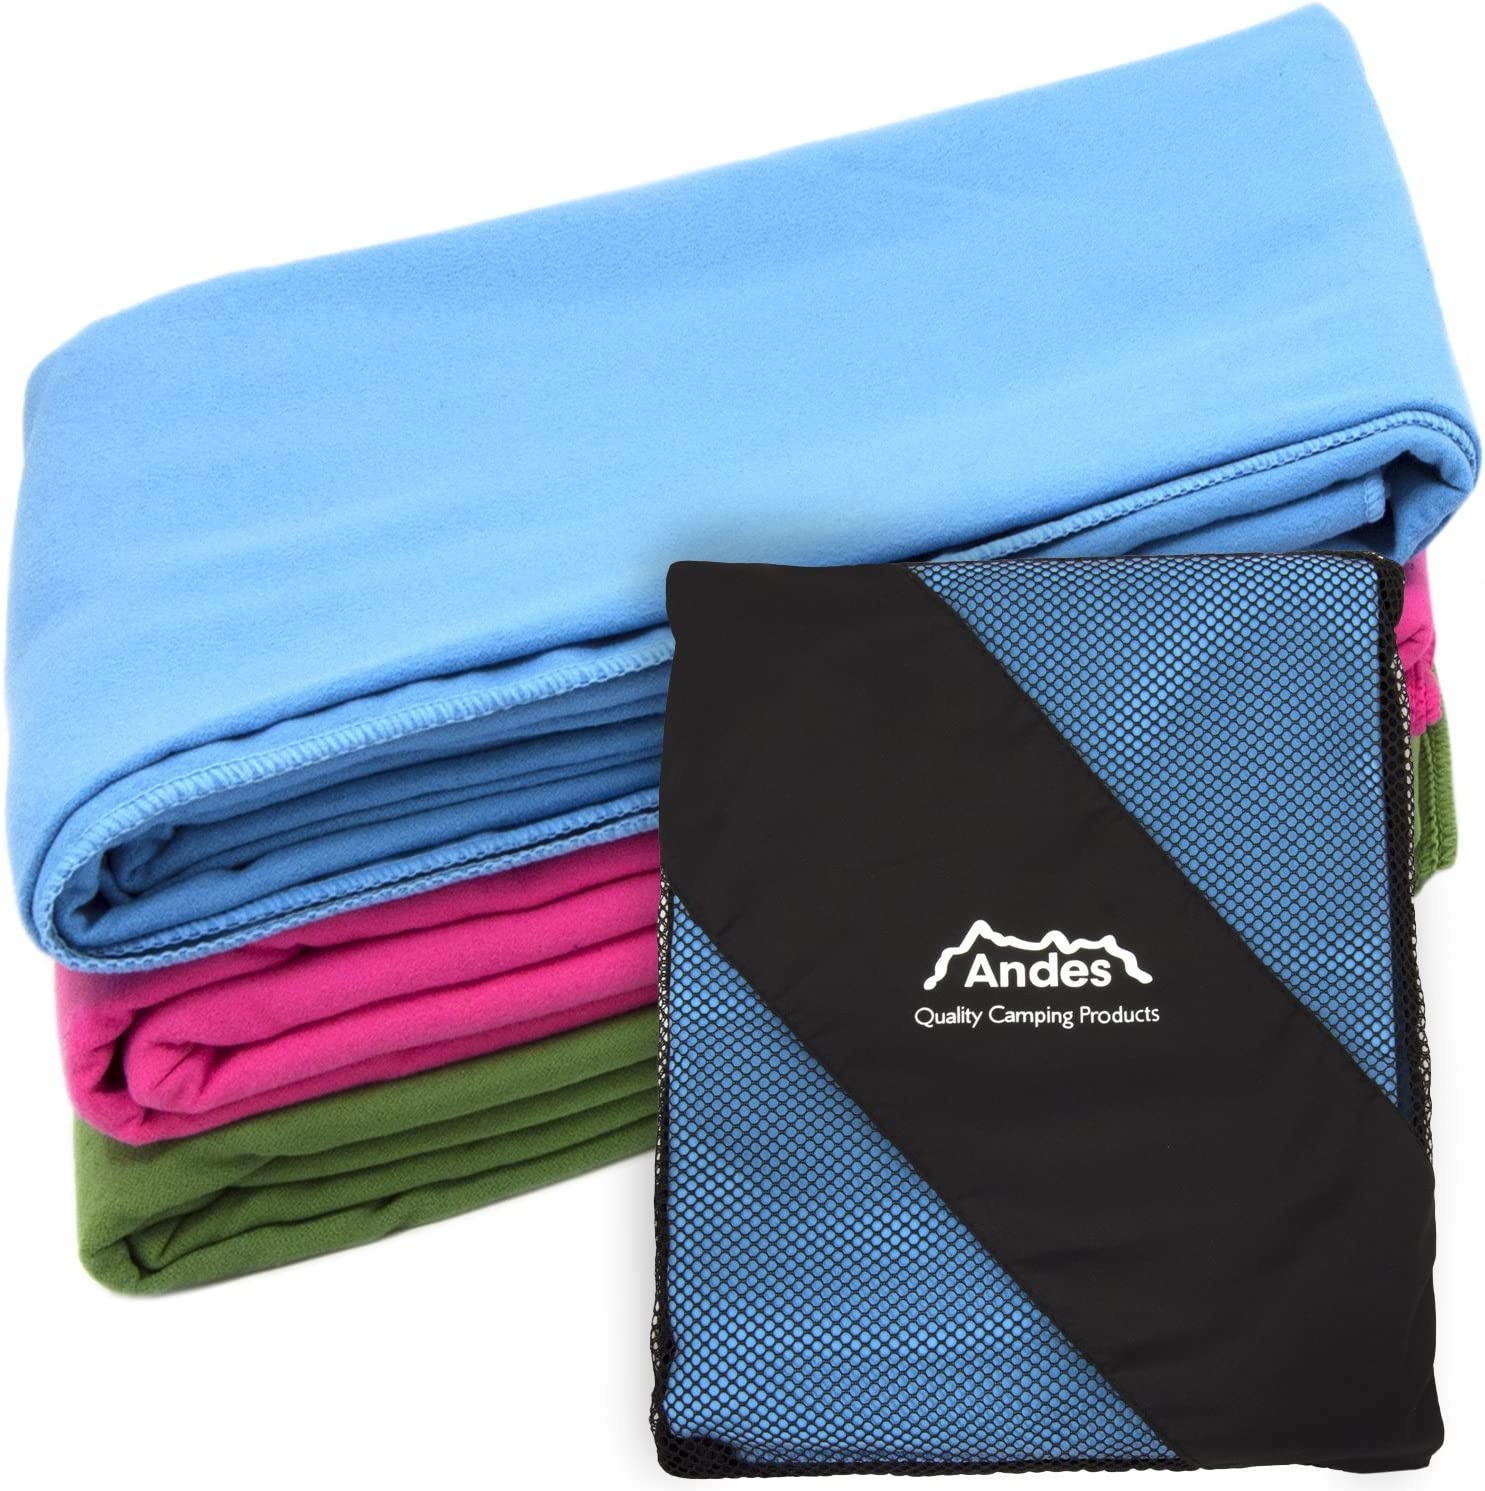 Andes Camping Anti Bacterial Microfibre Travel//Backpacking Towel